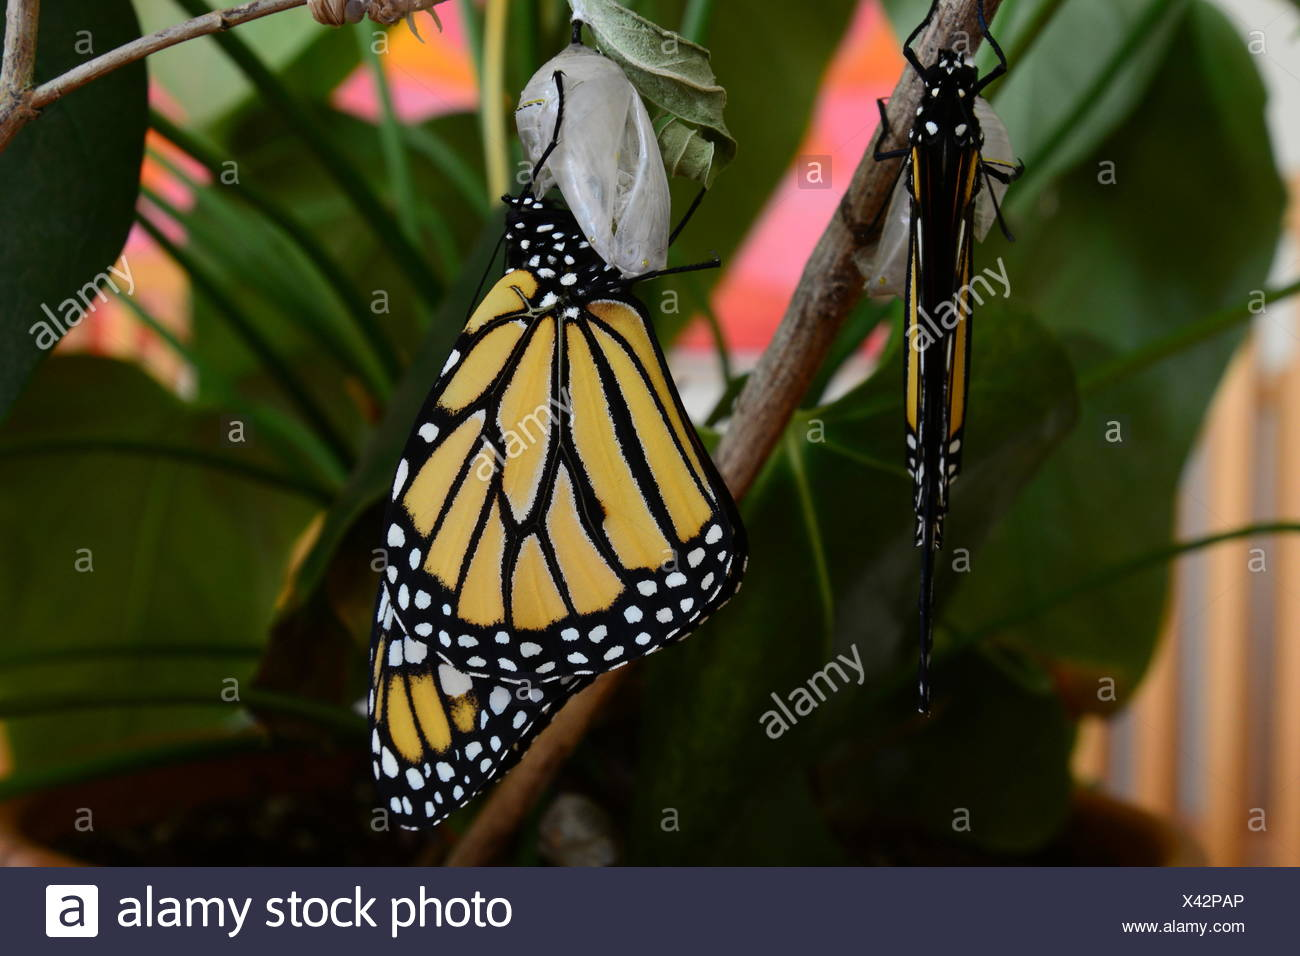 Monarch butterfly, Danaus plexippus, newly hatched from chrysalis. - Stock Image